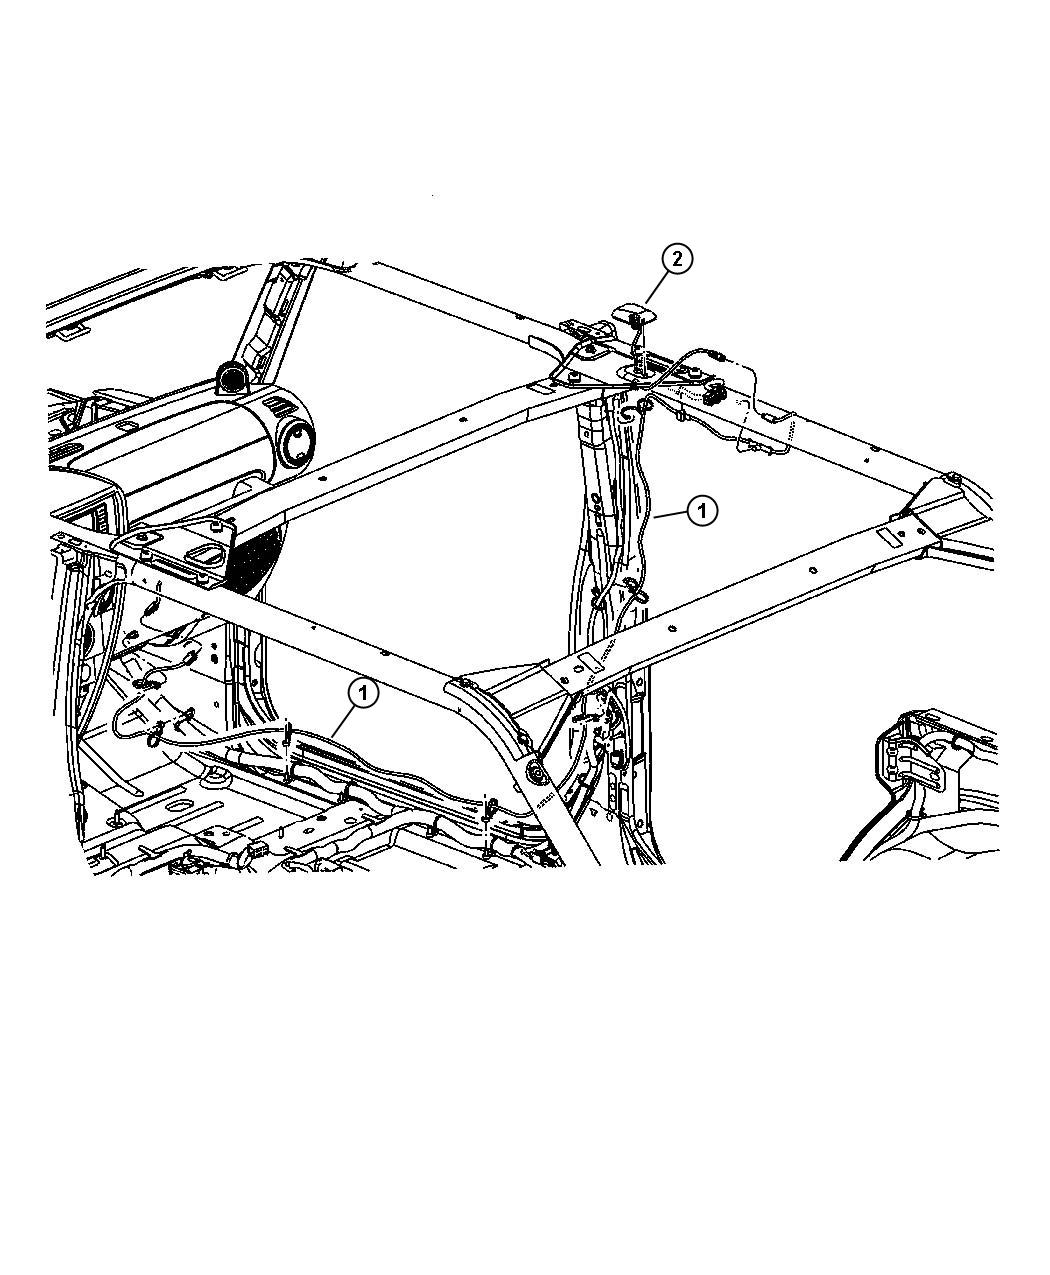 2009 Jeep Wrangler Antenna. Satellite. After 11/25/06, up